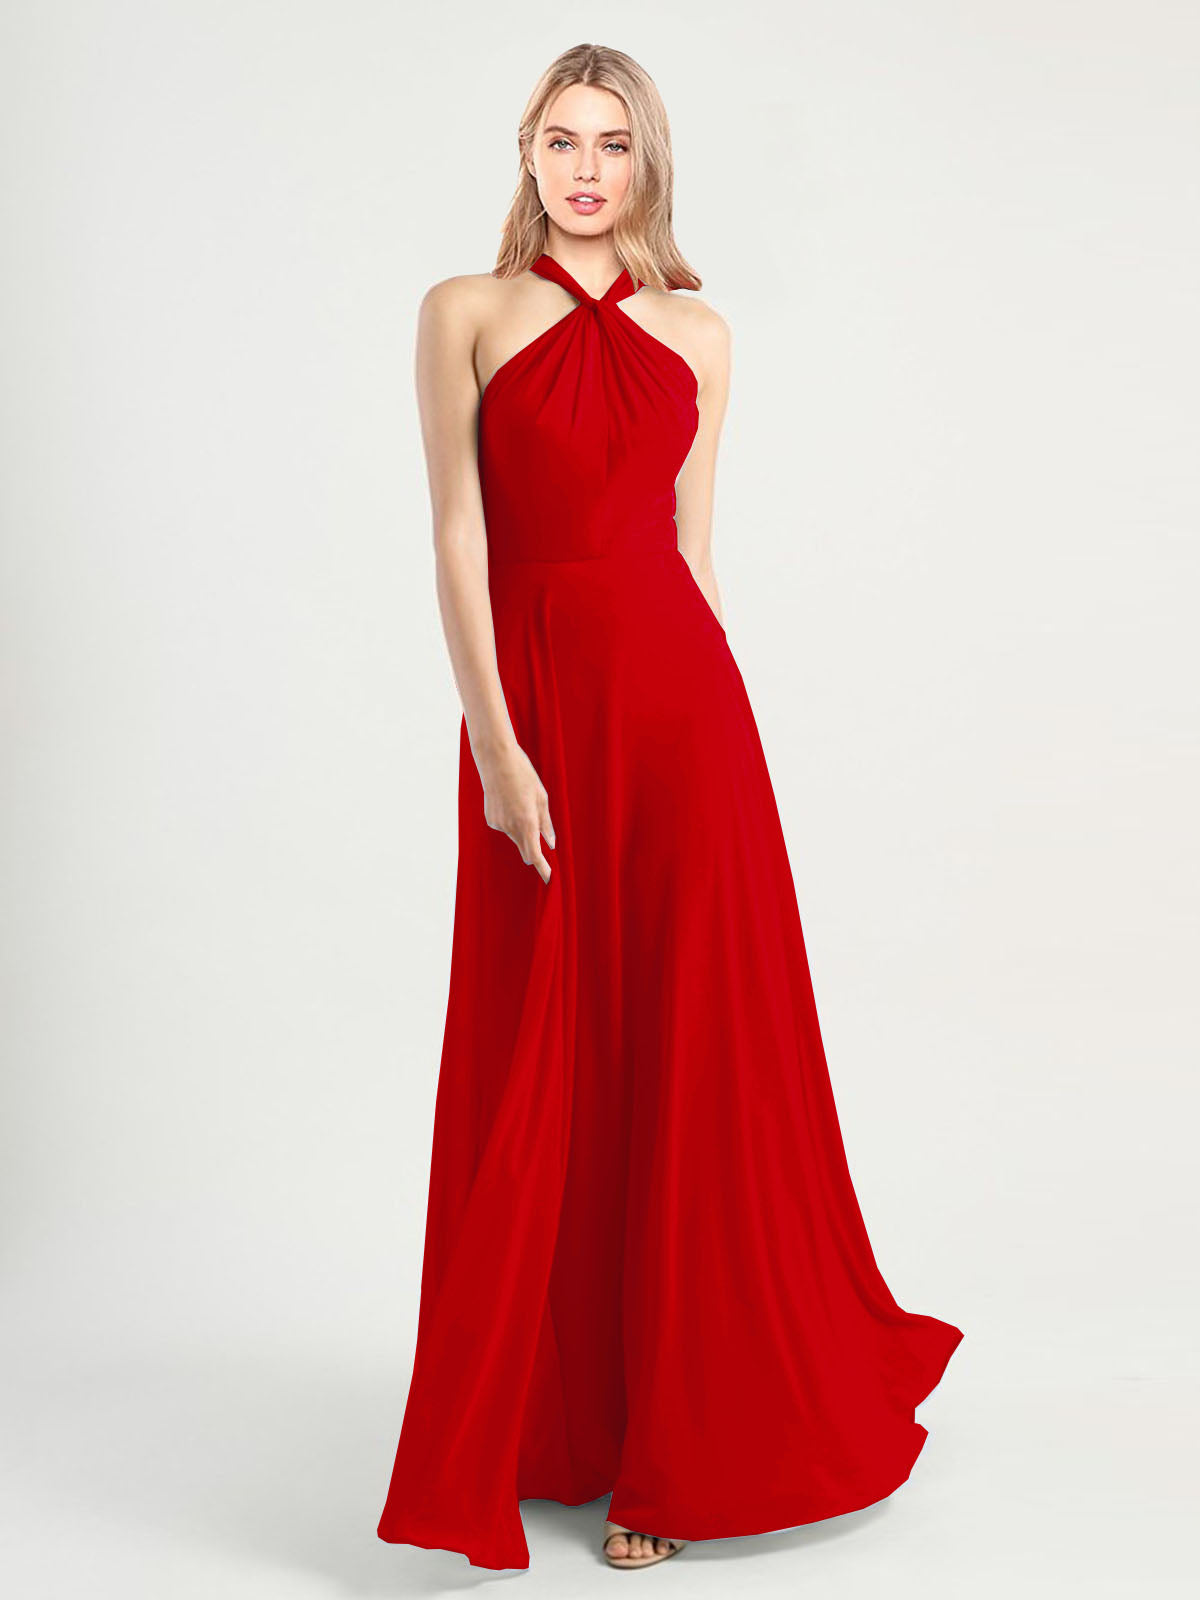 Long A-Line High Neck, Halter Sleeveless Dark Red Chiffon Bridesmaid Dress Yoli